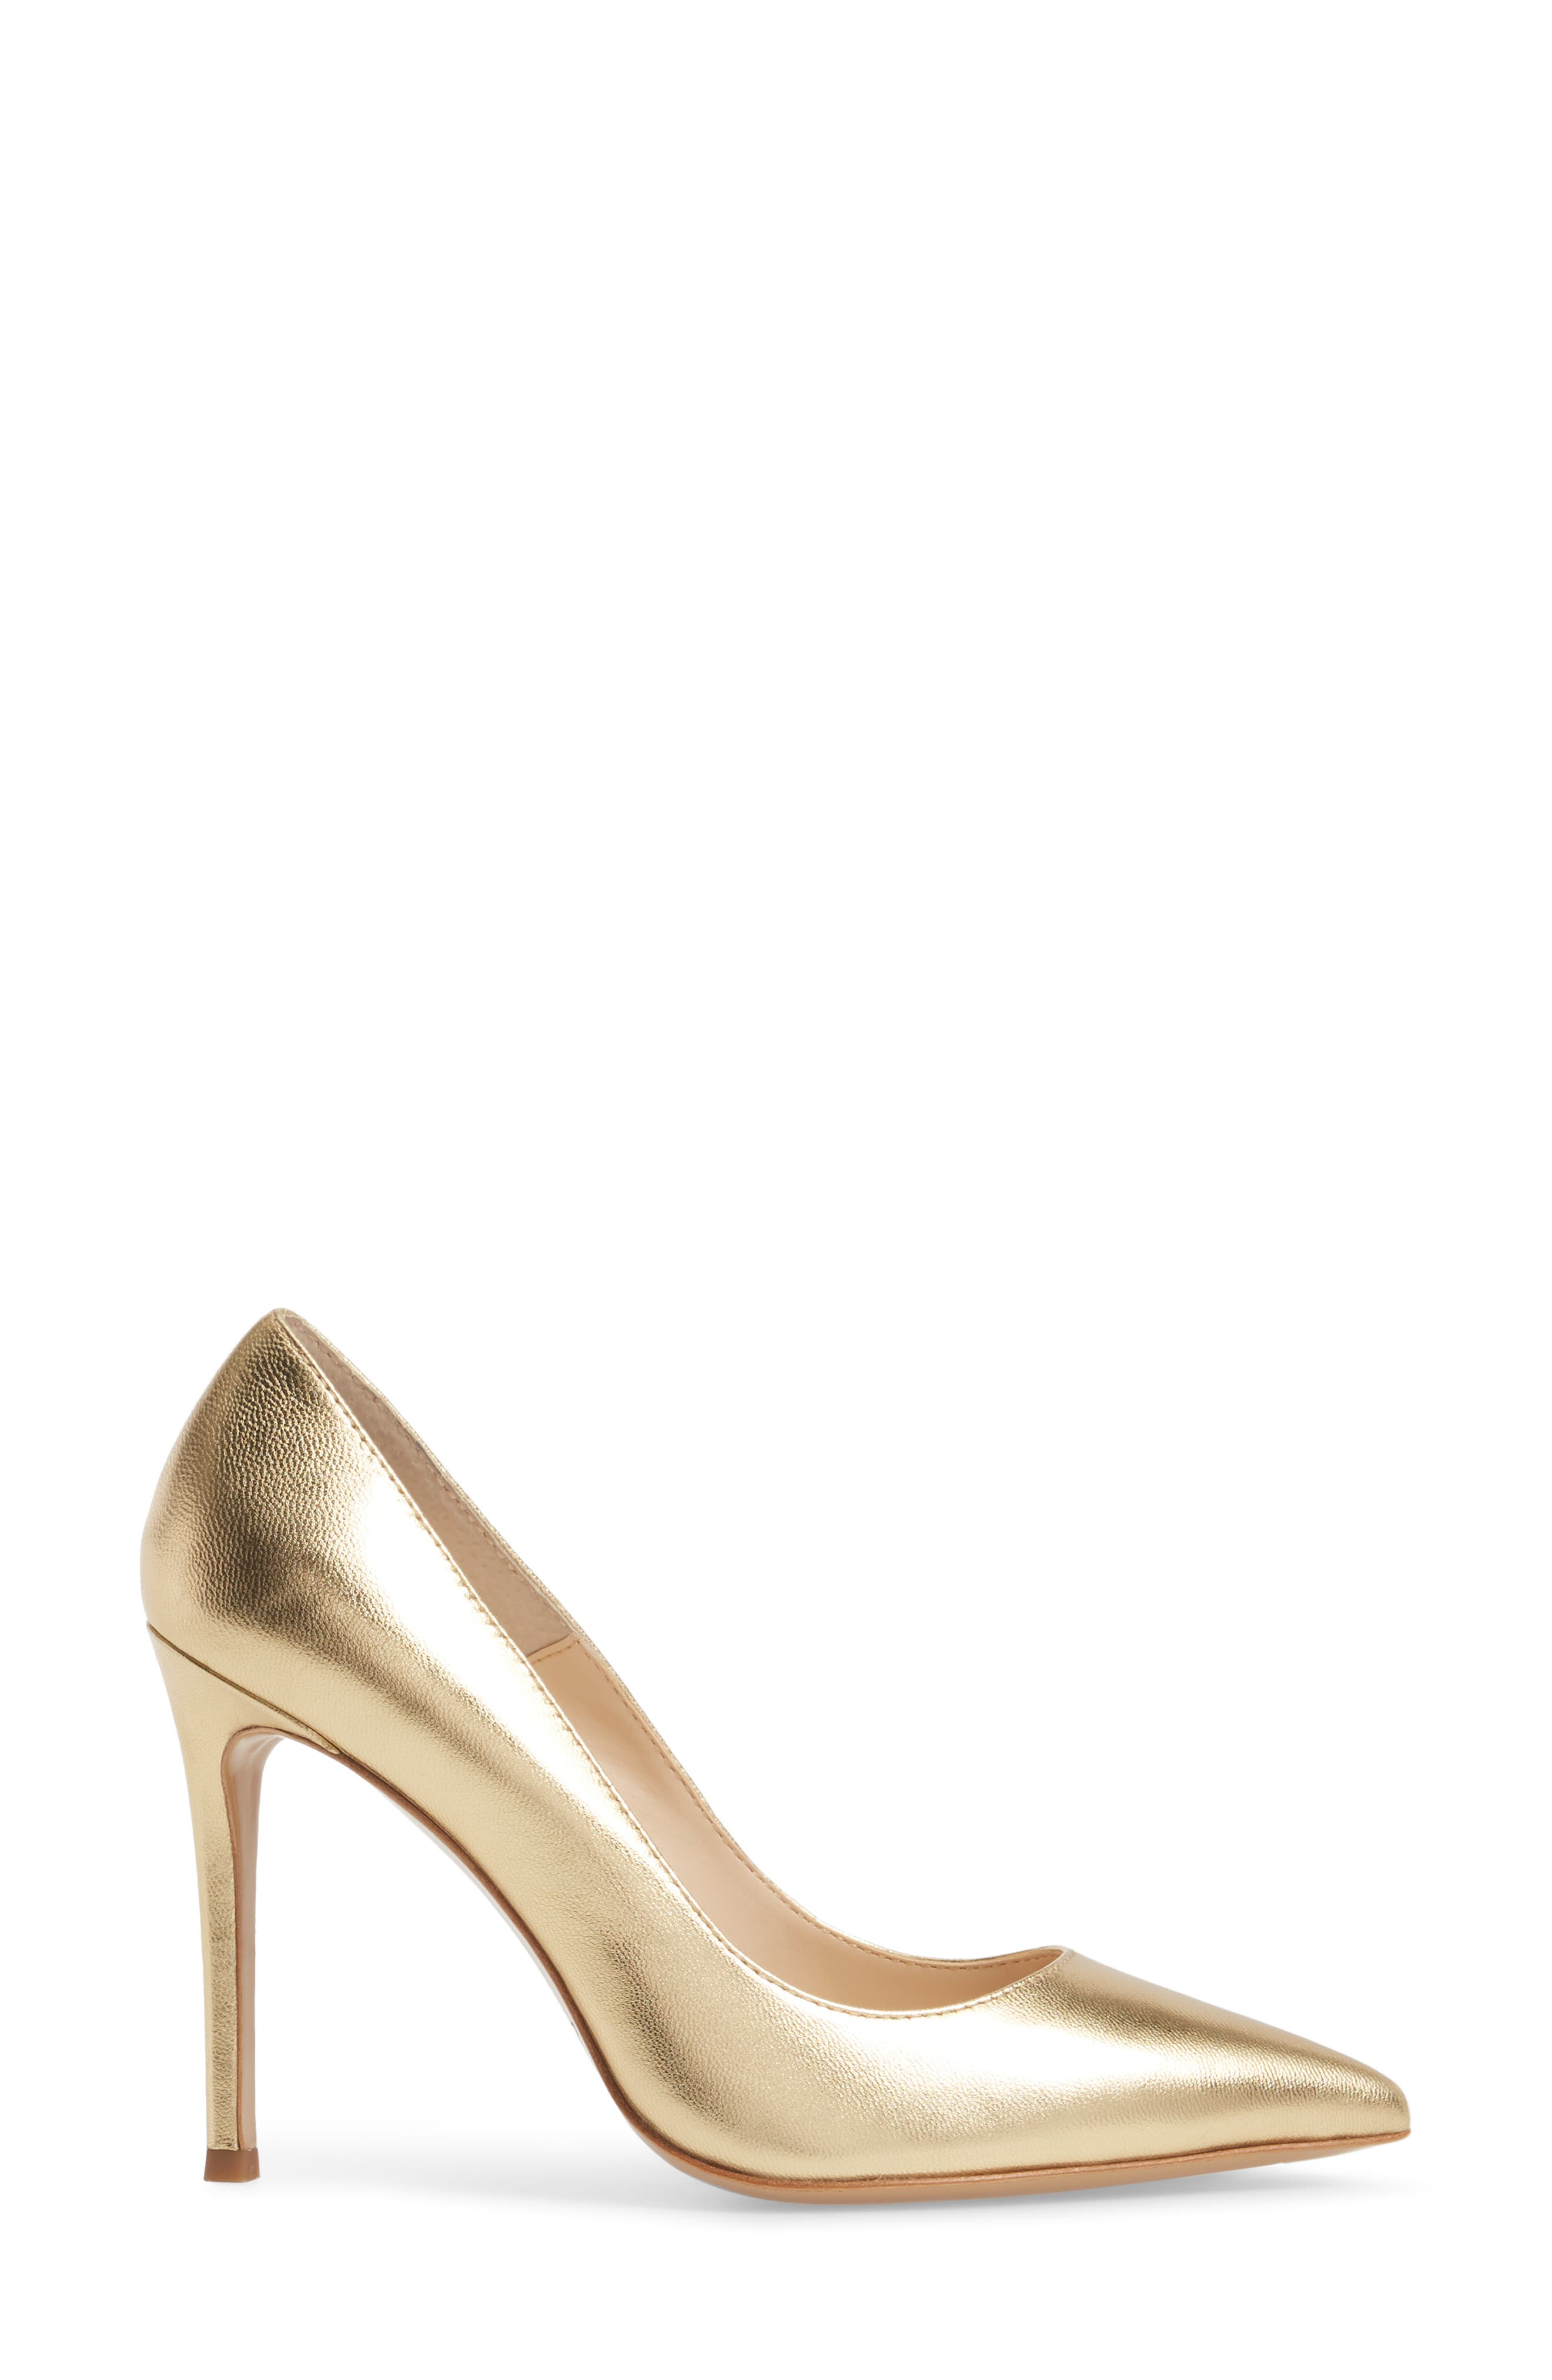 CHARLES DAVID, Calessi Pointy Toe Pump, Alternate thumbnail 3, color, GOLD LEATHER